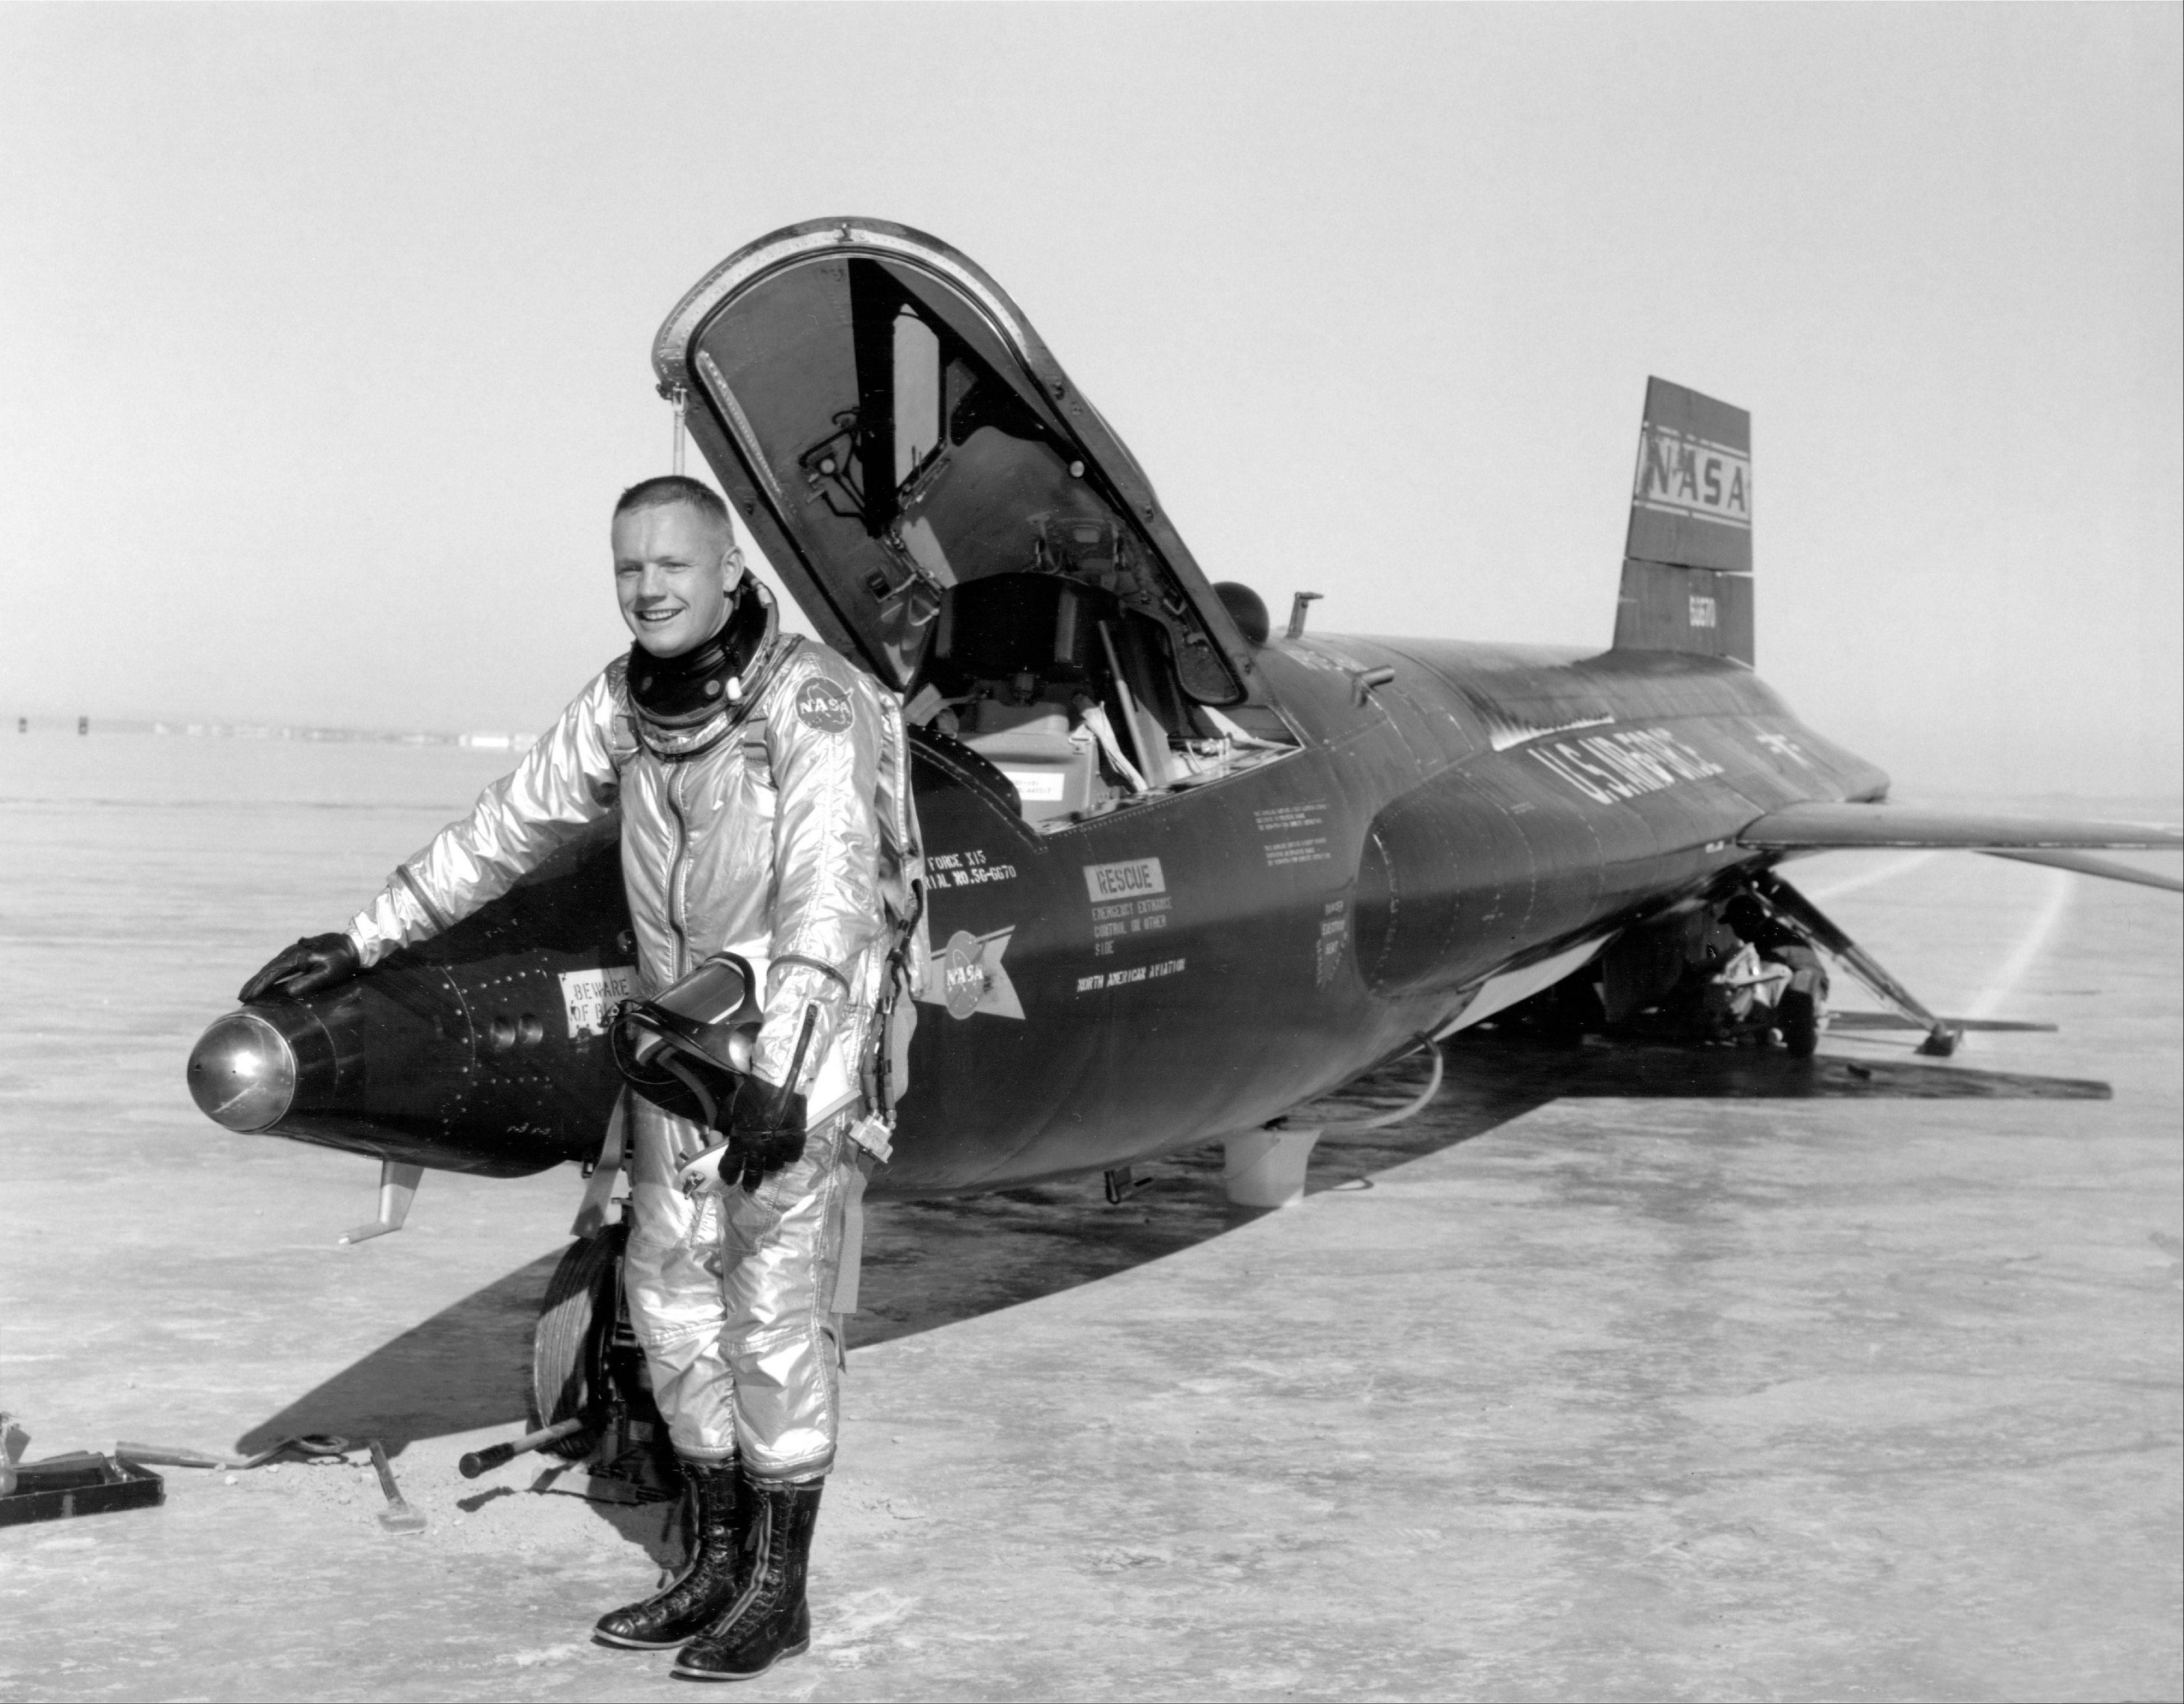 This undated image provided by NASA shows Neil Armstrong posing with a X-15. During re-entry from flight training at 207,000 feet in the X-15, Neil Armstrong inadvertently overshot Edwards Air Force Base in California, heading south at Mach 3 and 100,000 feet altitude. Legend has it he finally managed to turn back while over the Rose Bowl in Pasadena, and had just enough energy to land on the south end of Rogers Dry Lake at Edwards.